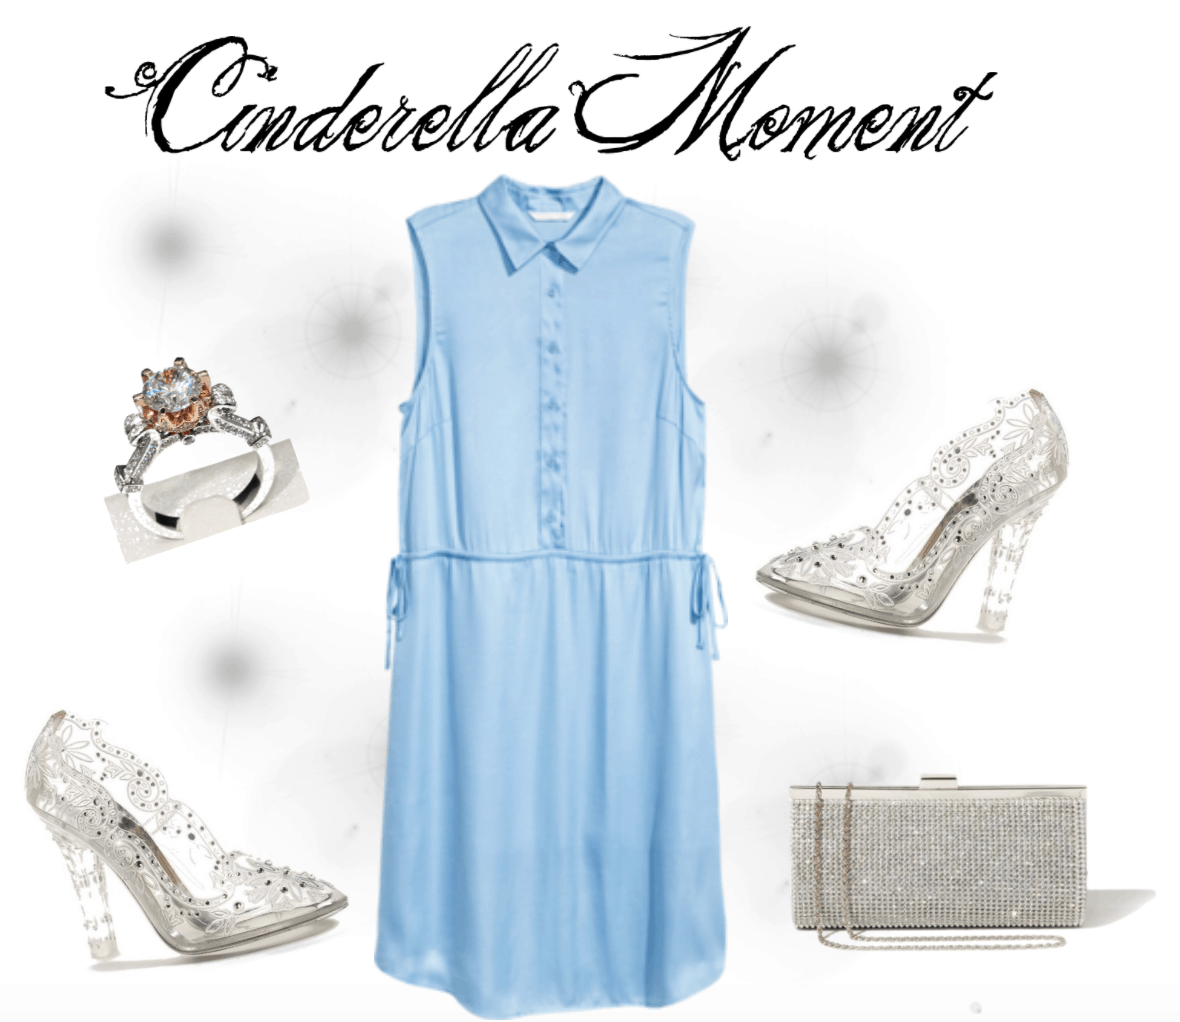 Light blue satin dress that will give you that perfect Cinderella moment.